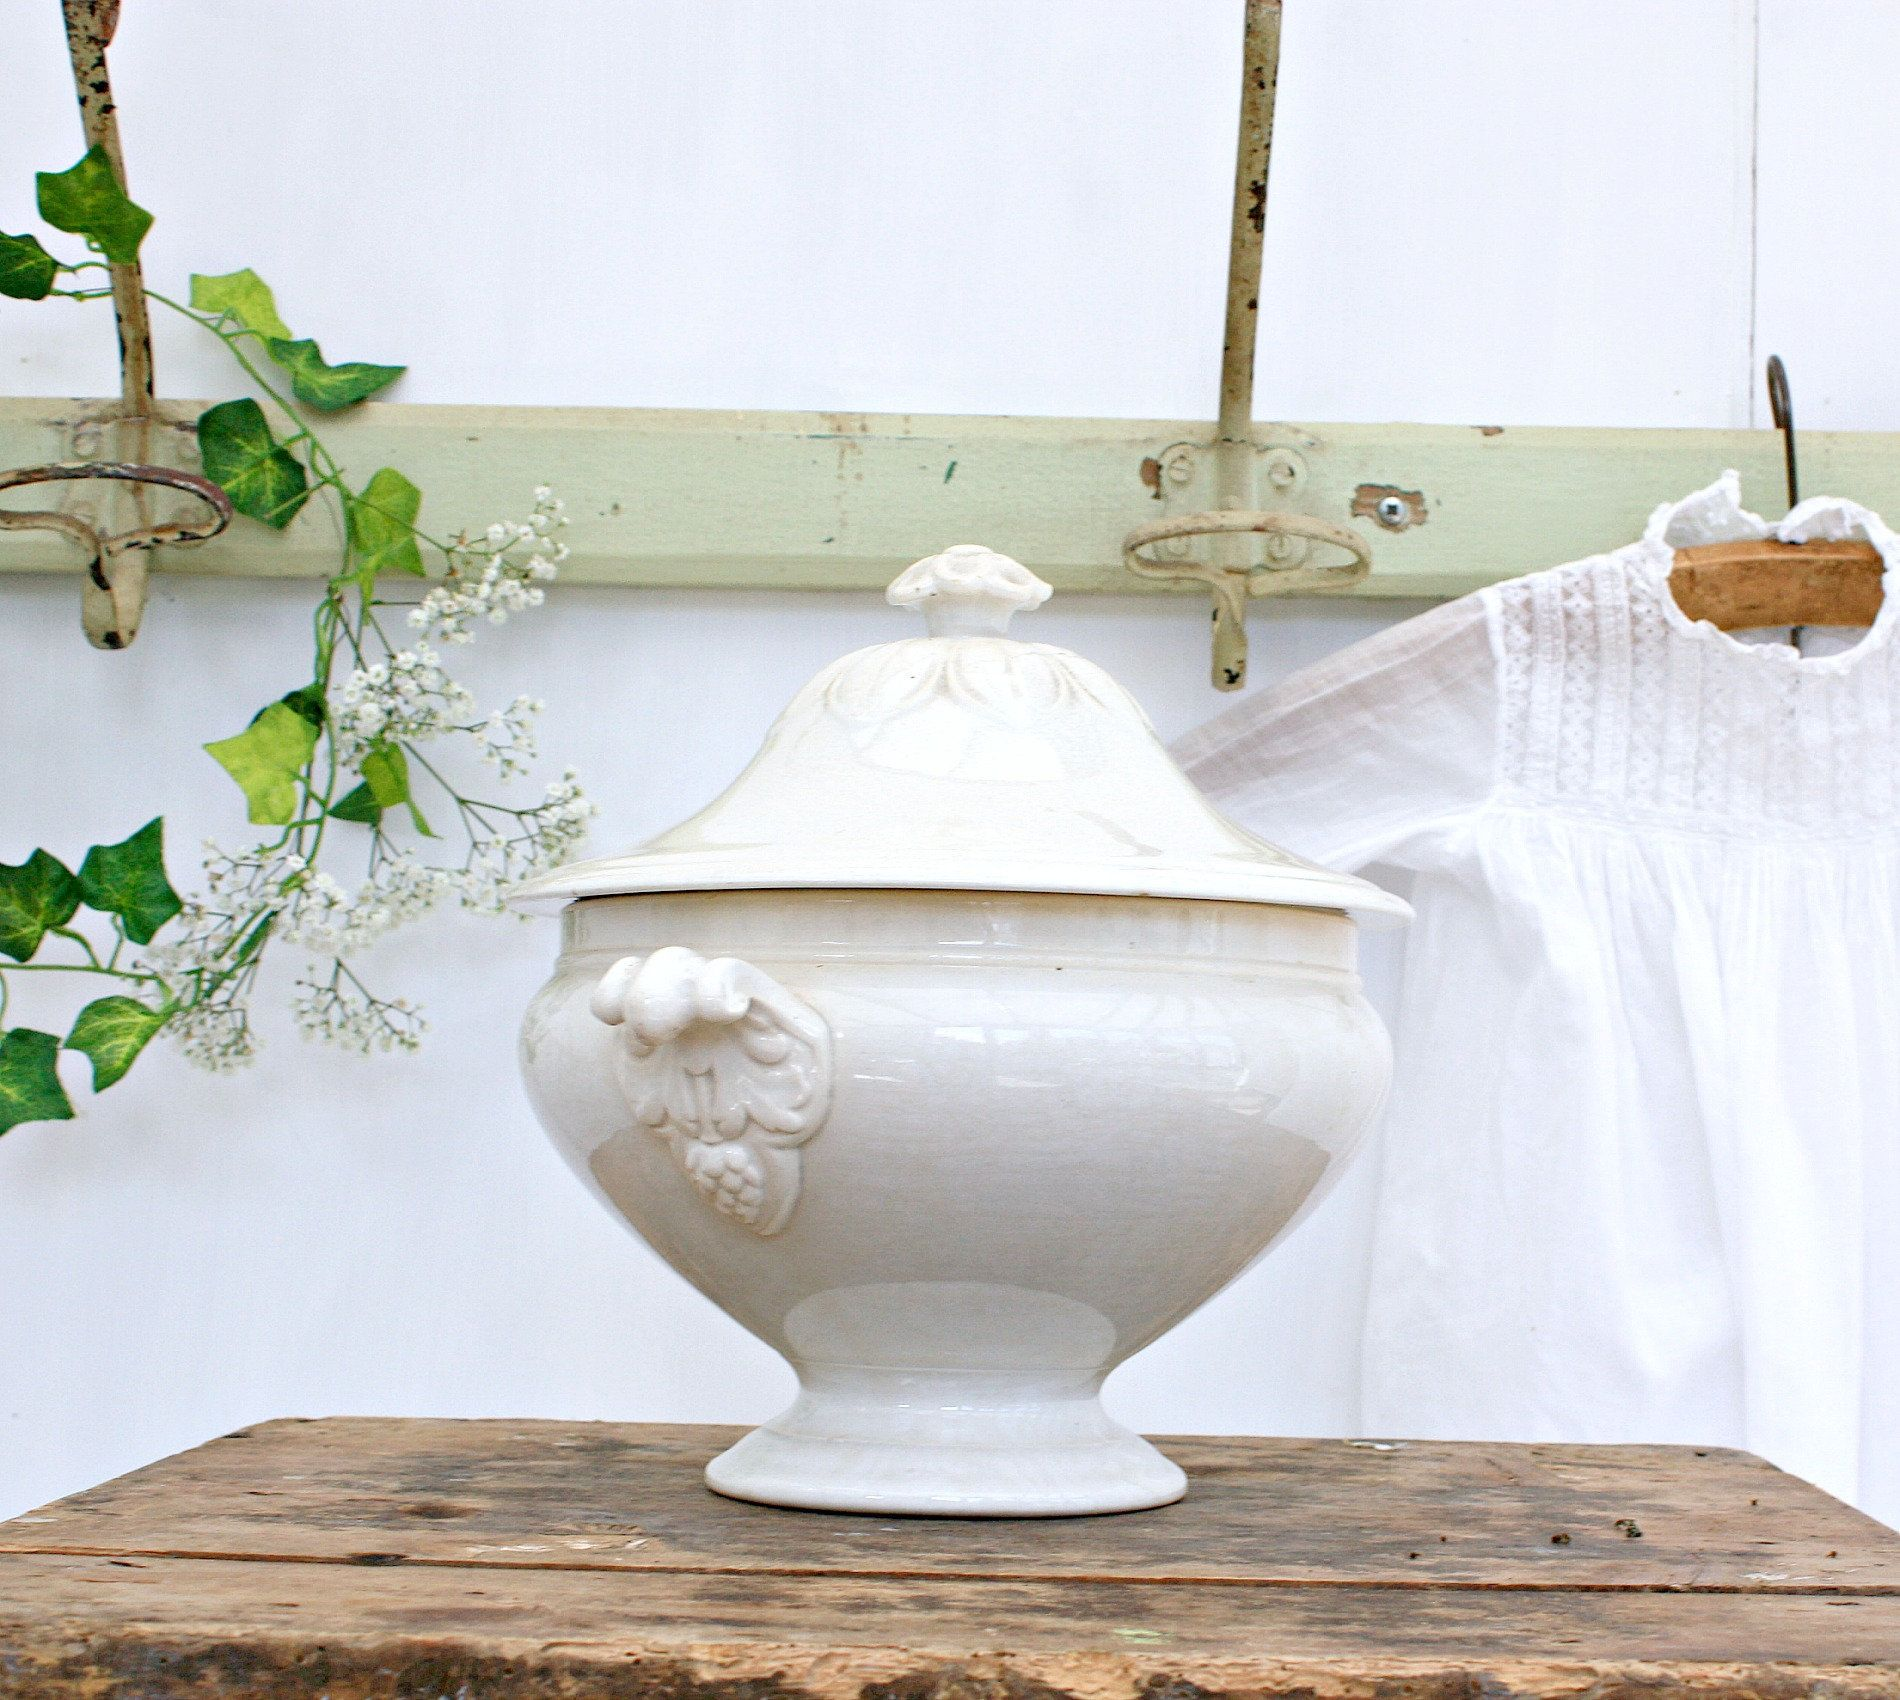 French Country Home Joan D/'Arc Decor French Farmhouse Scandinavian Decor Nordic Decor Ornate Handles French White Ironstone Tureen